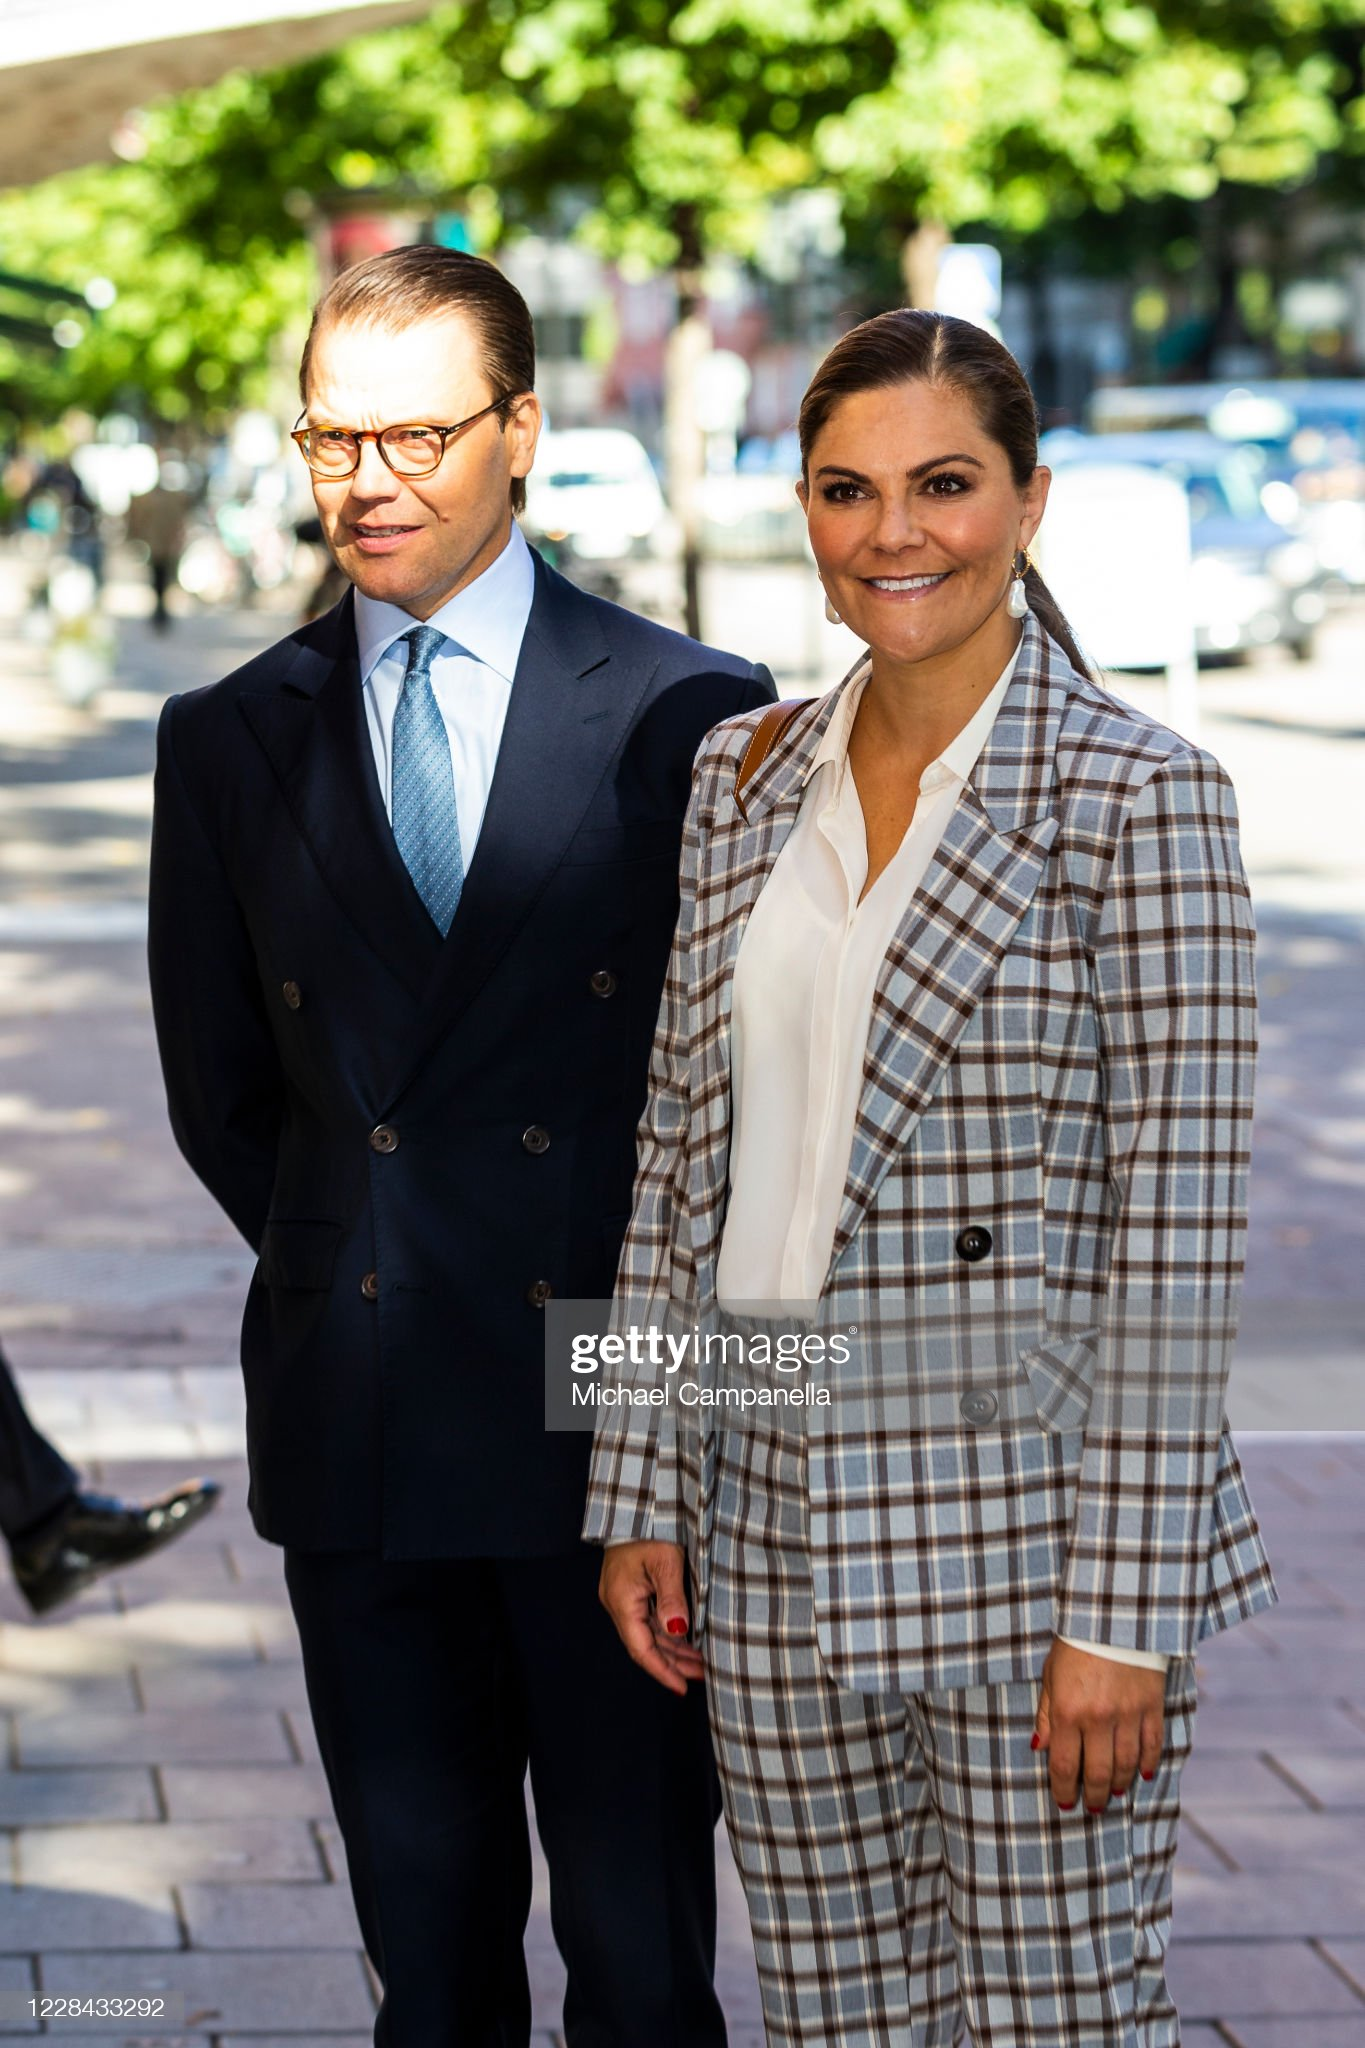 crown-princess-victoria-and-prince-daniel-of-sweden-visit-the-swedish-picture-id1228433292